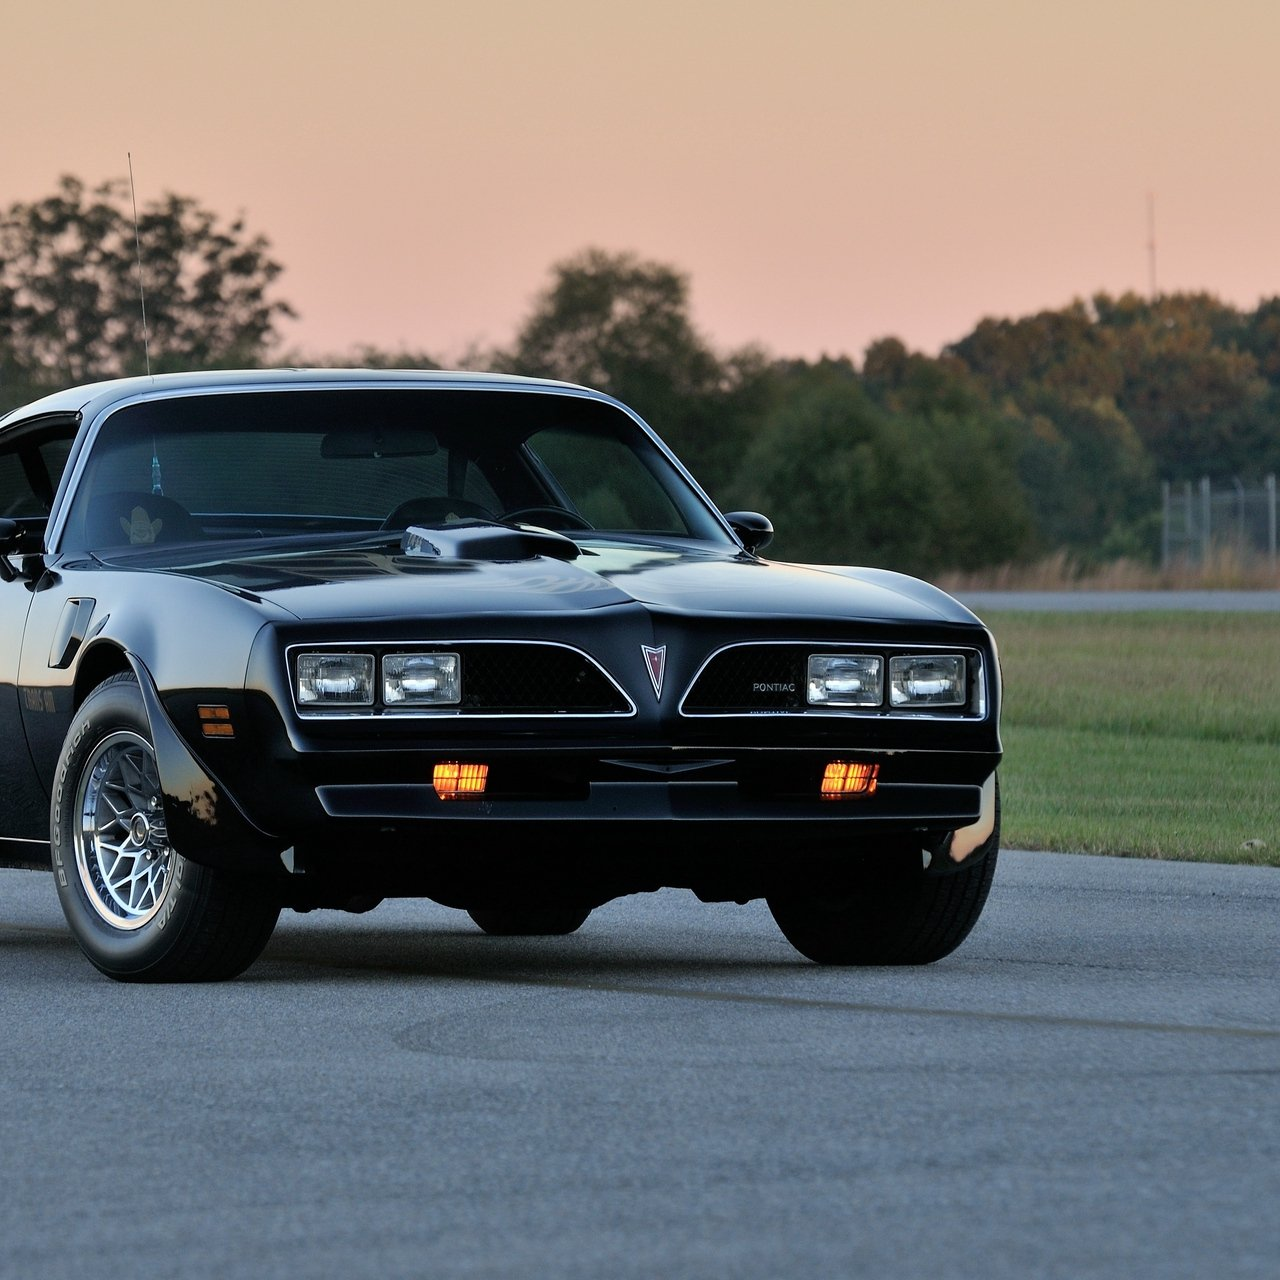 Download wallpaper 1280x1280 pontiac firebird trans am ws6 ipad 1280x1280